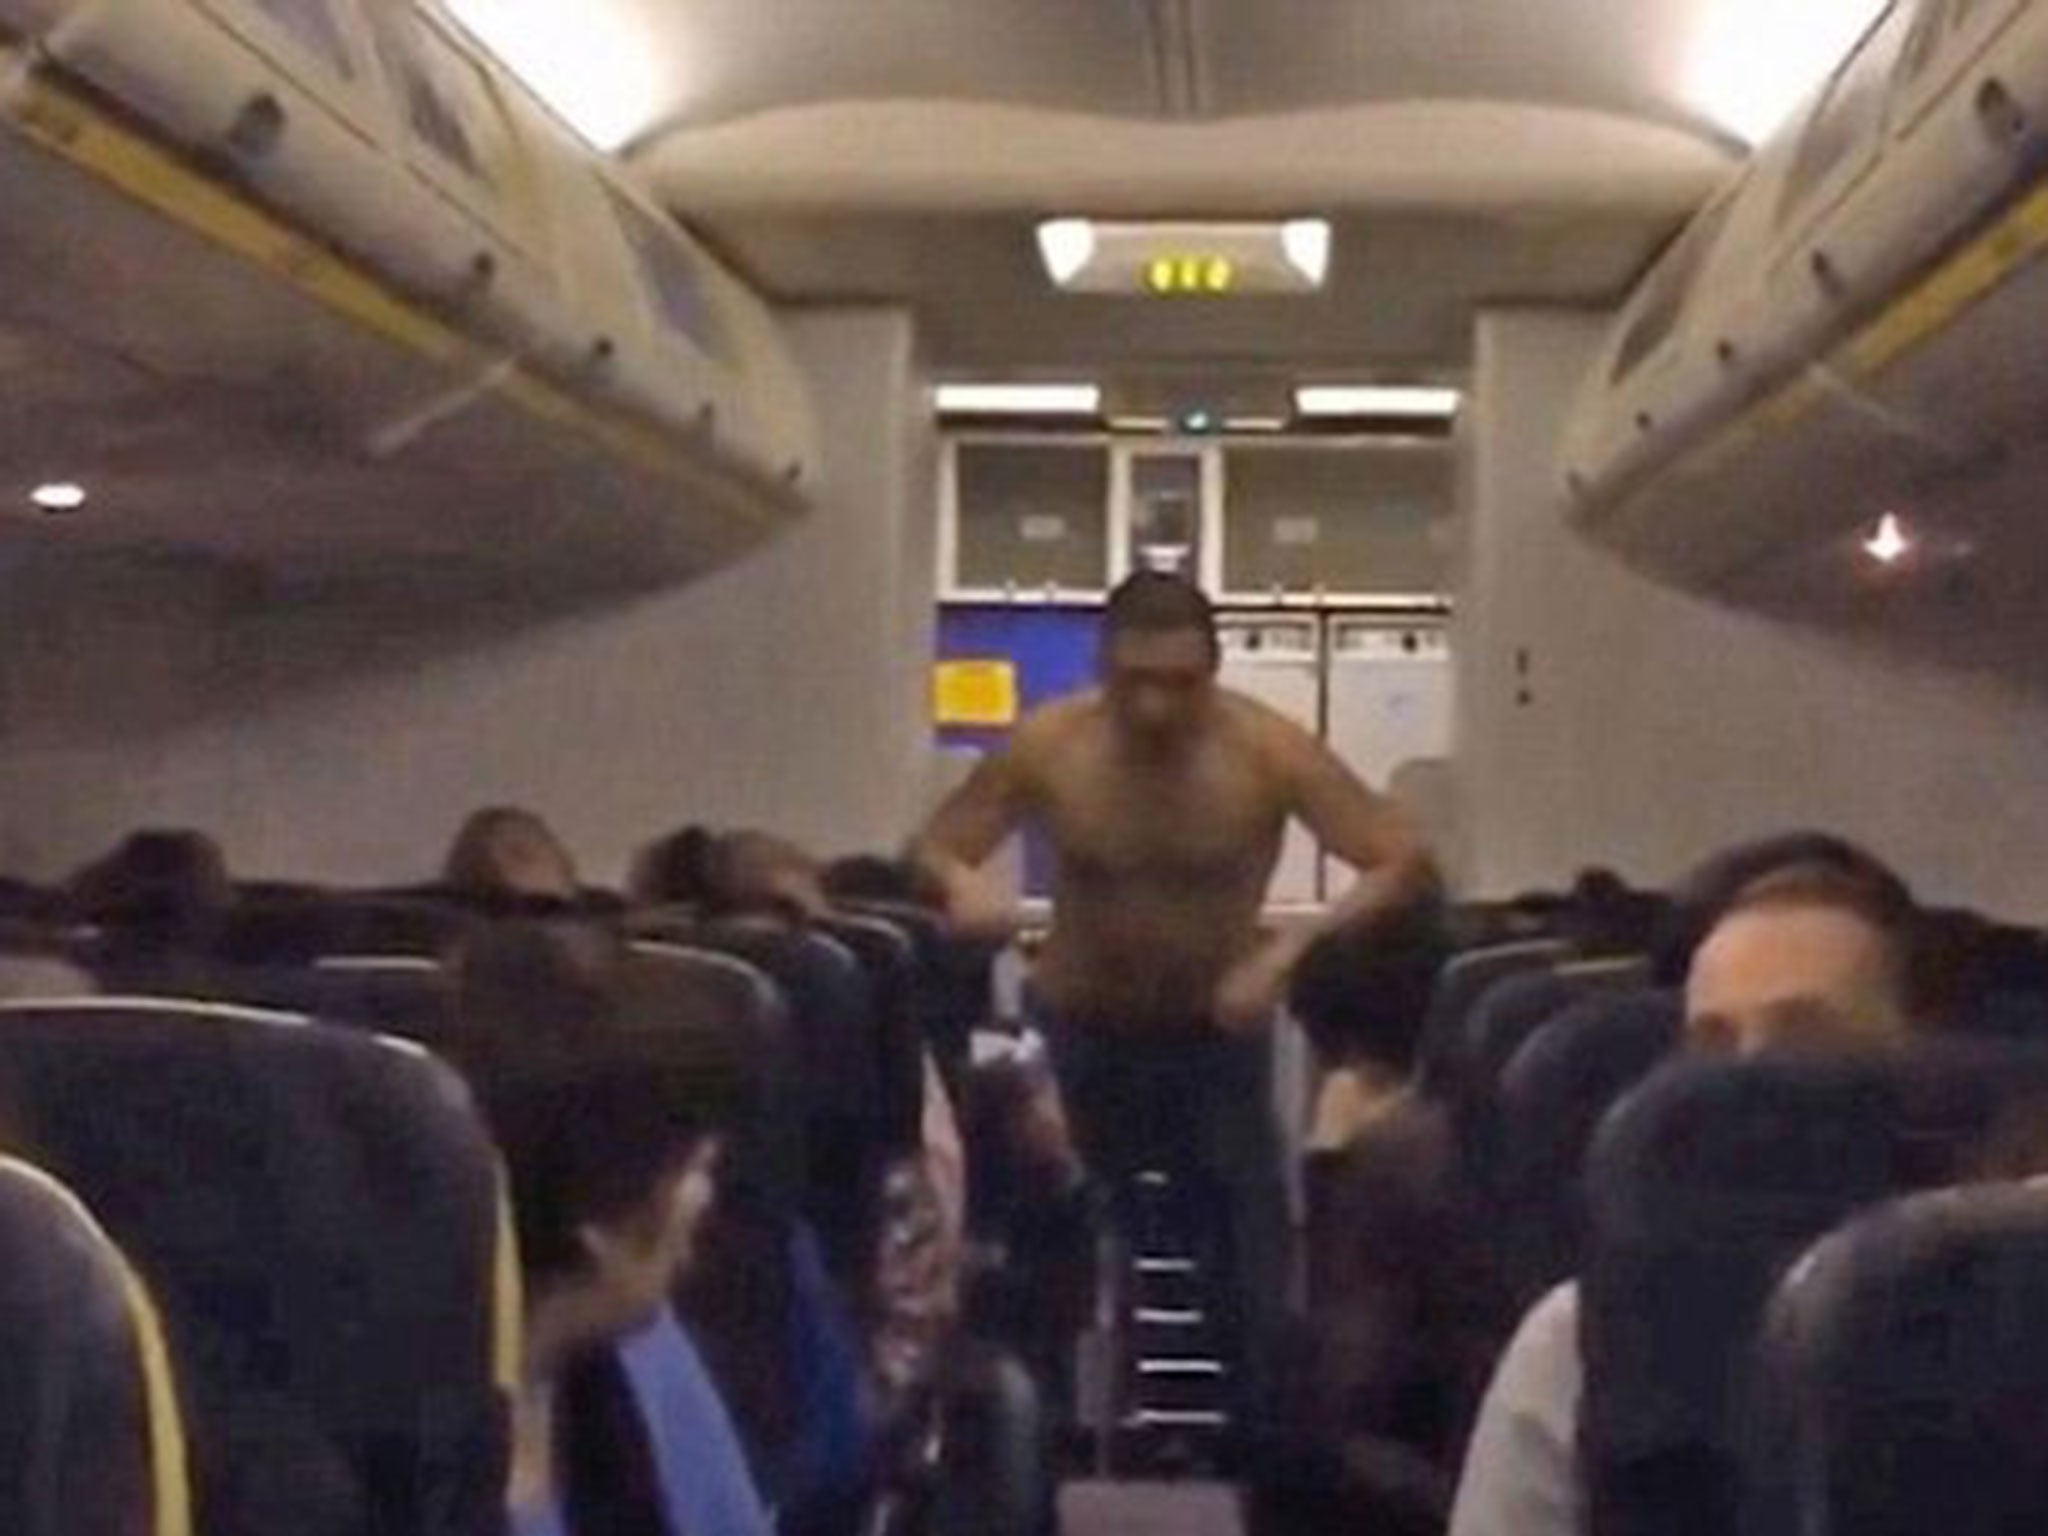 from Roman naked people on a plane